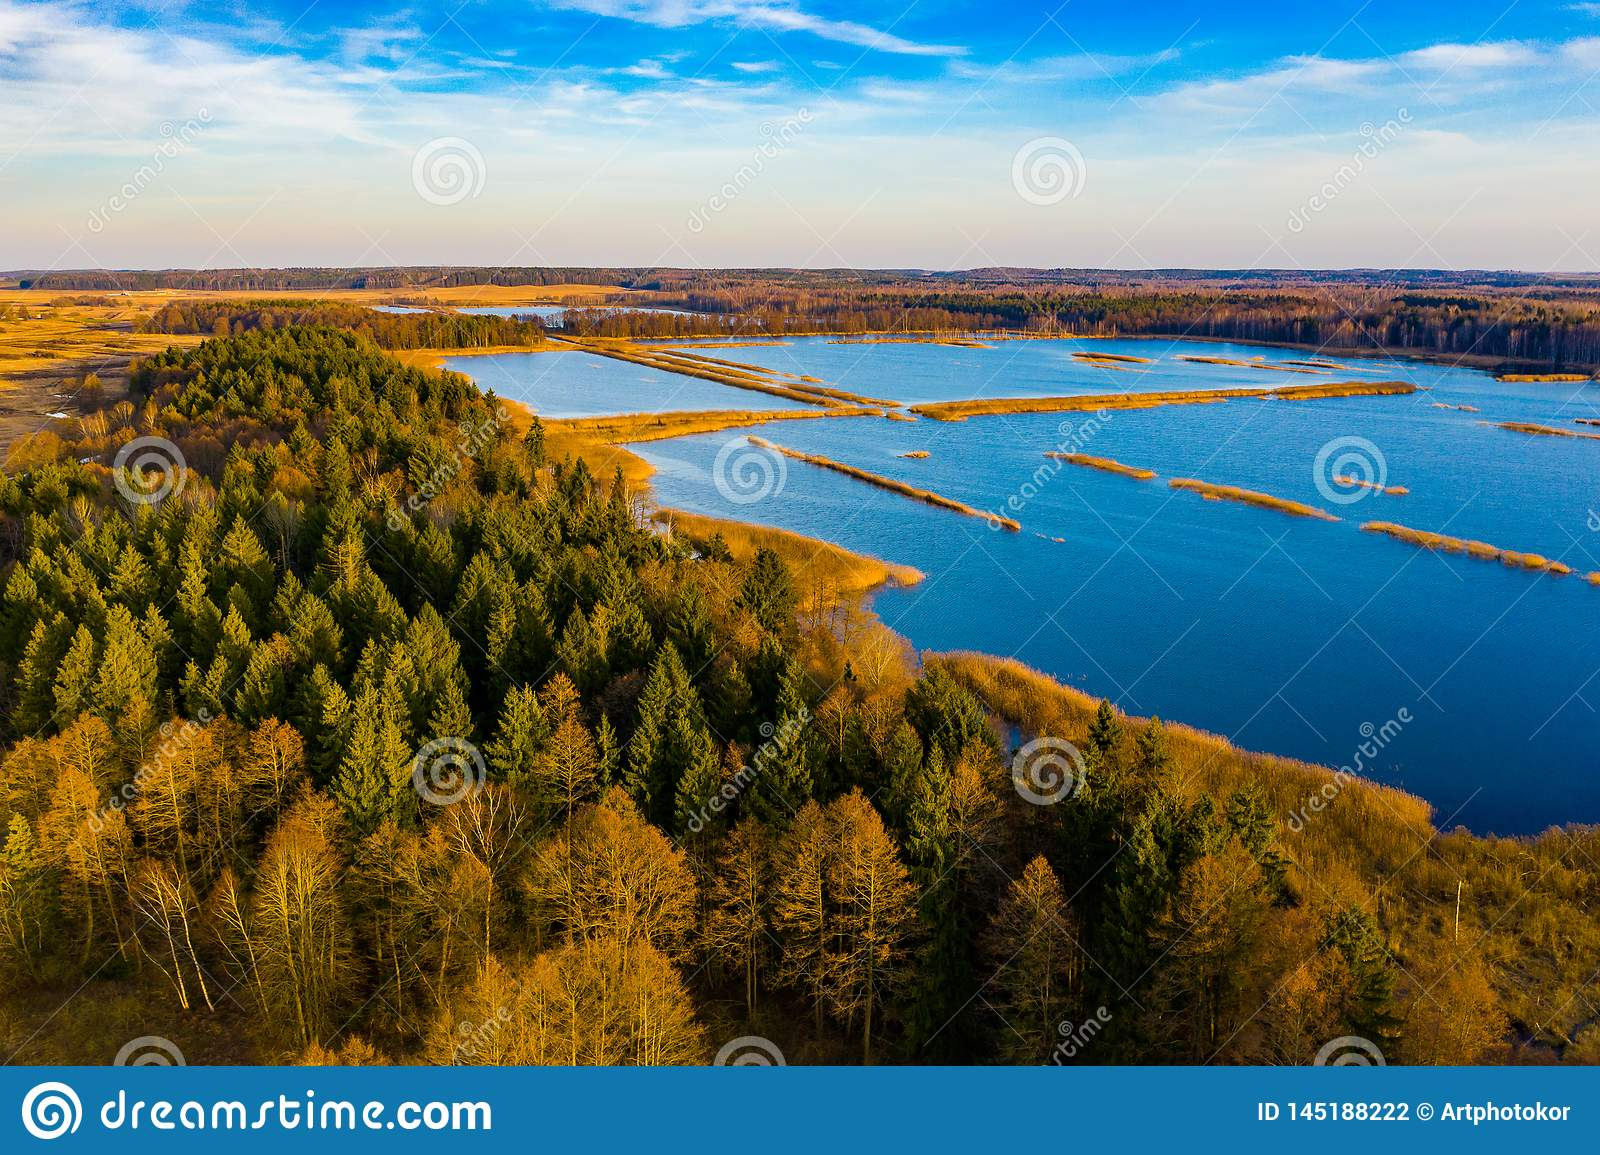 Blue lakes surrounding thick forest aerial view. Season concept. Beautiful landscape